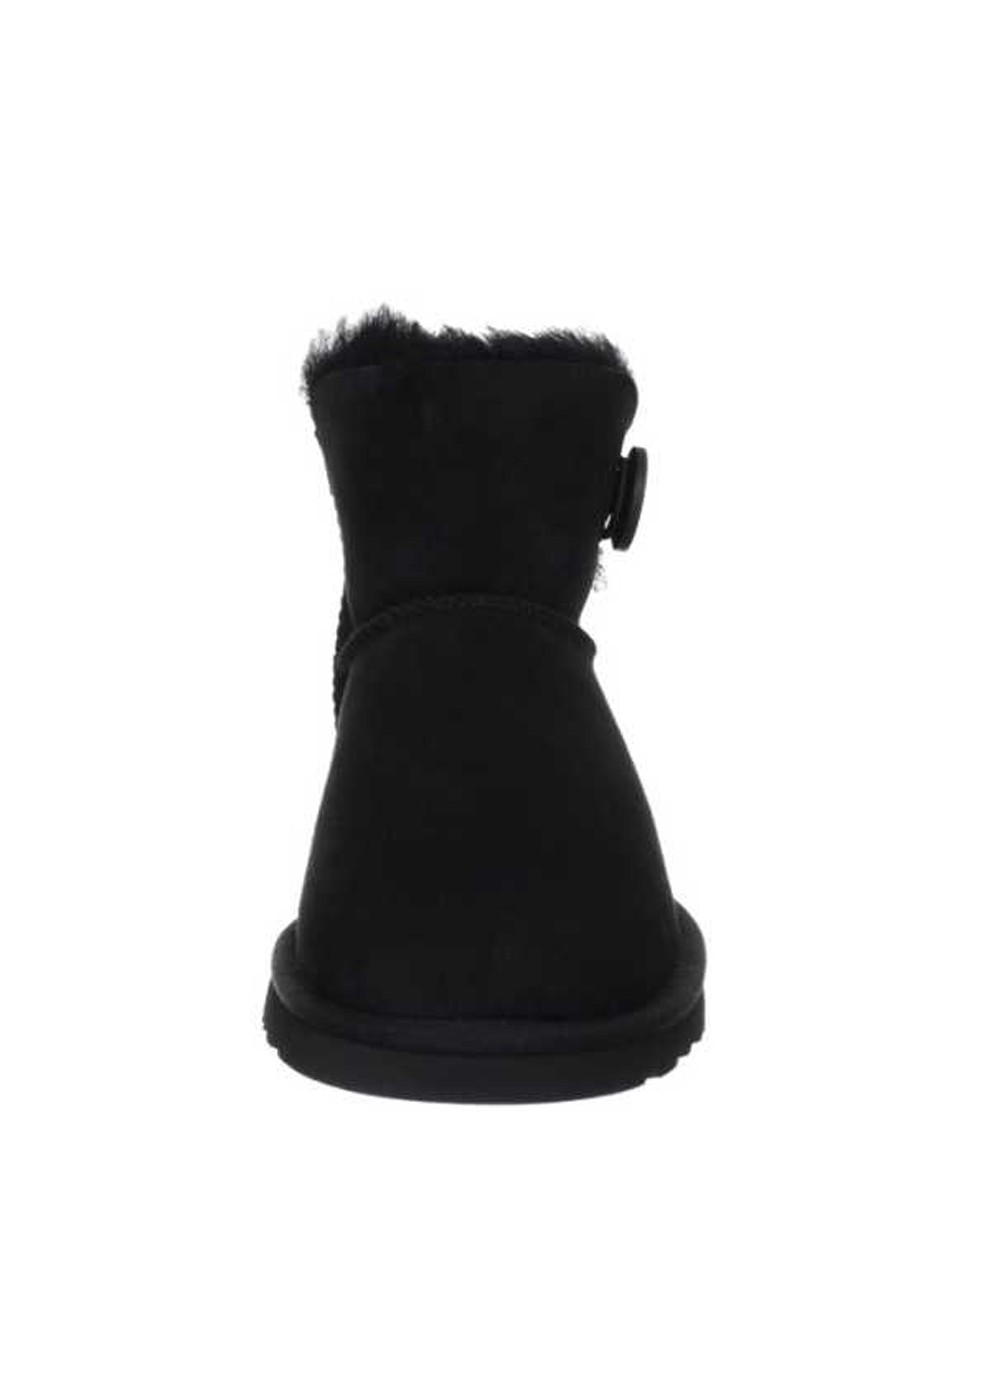 Mini Bailey Button II|Black|ブーツ|UGG|最大35%OFF